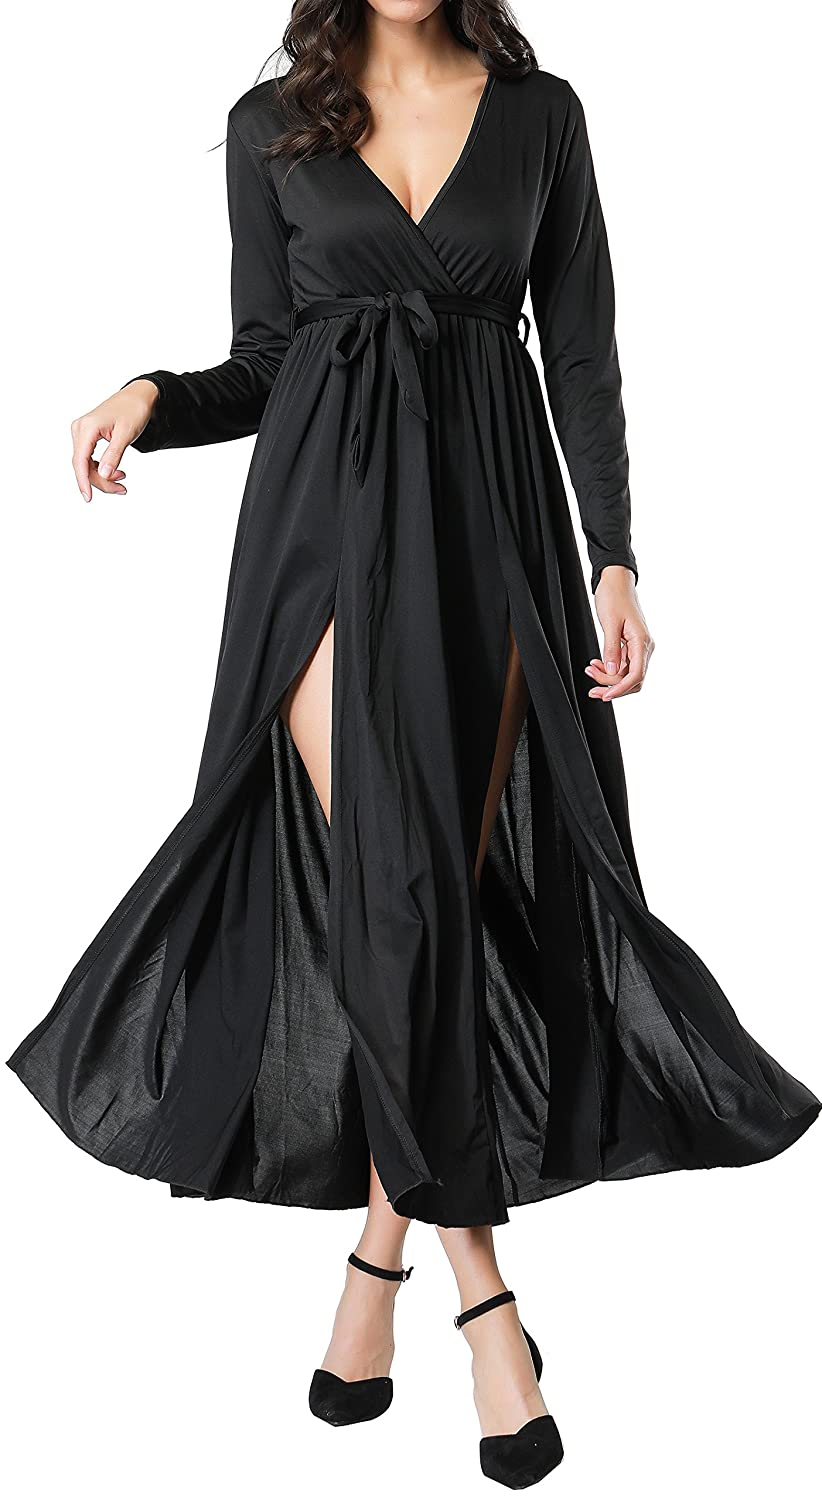 1a1f7f5586e5 VEBE Womens Split Maxi Dress, Wrap Maxi Dress with Belt, Deep V Neck High  Waist Long Sleeve Black Casual Dress at Amazon Women's Clothing store: